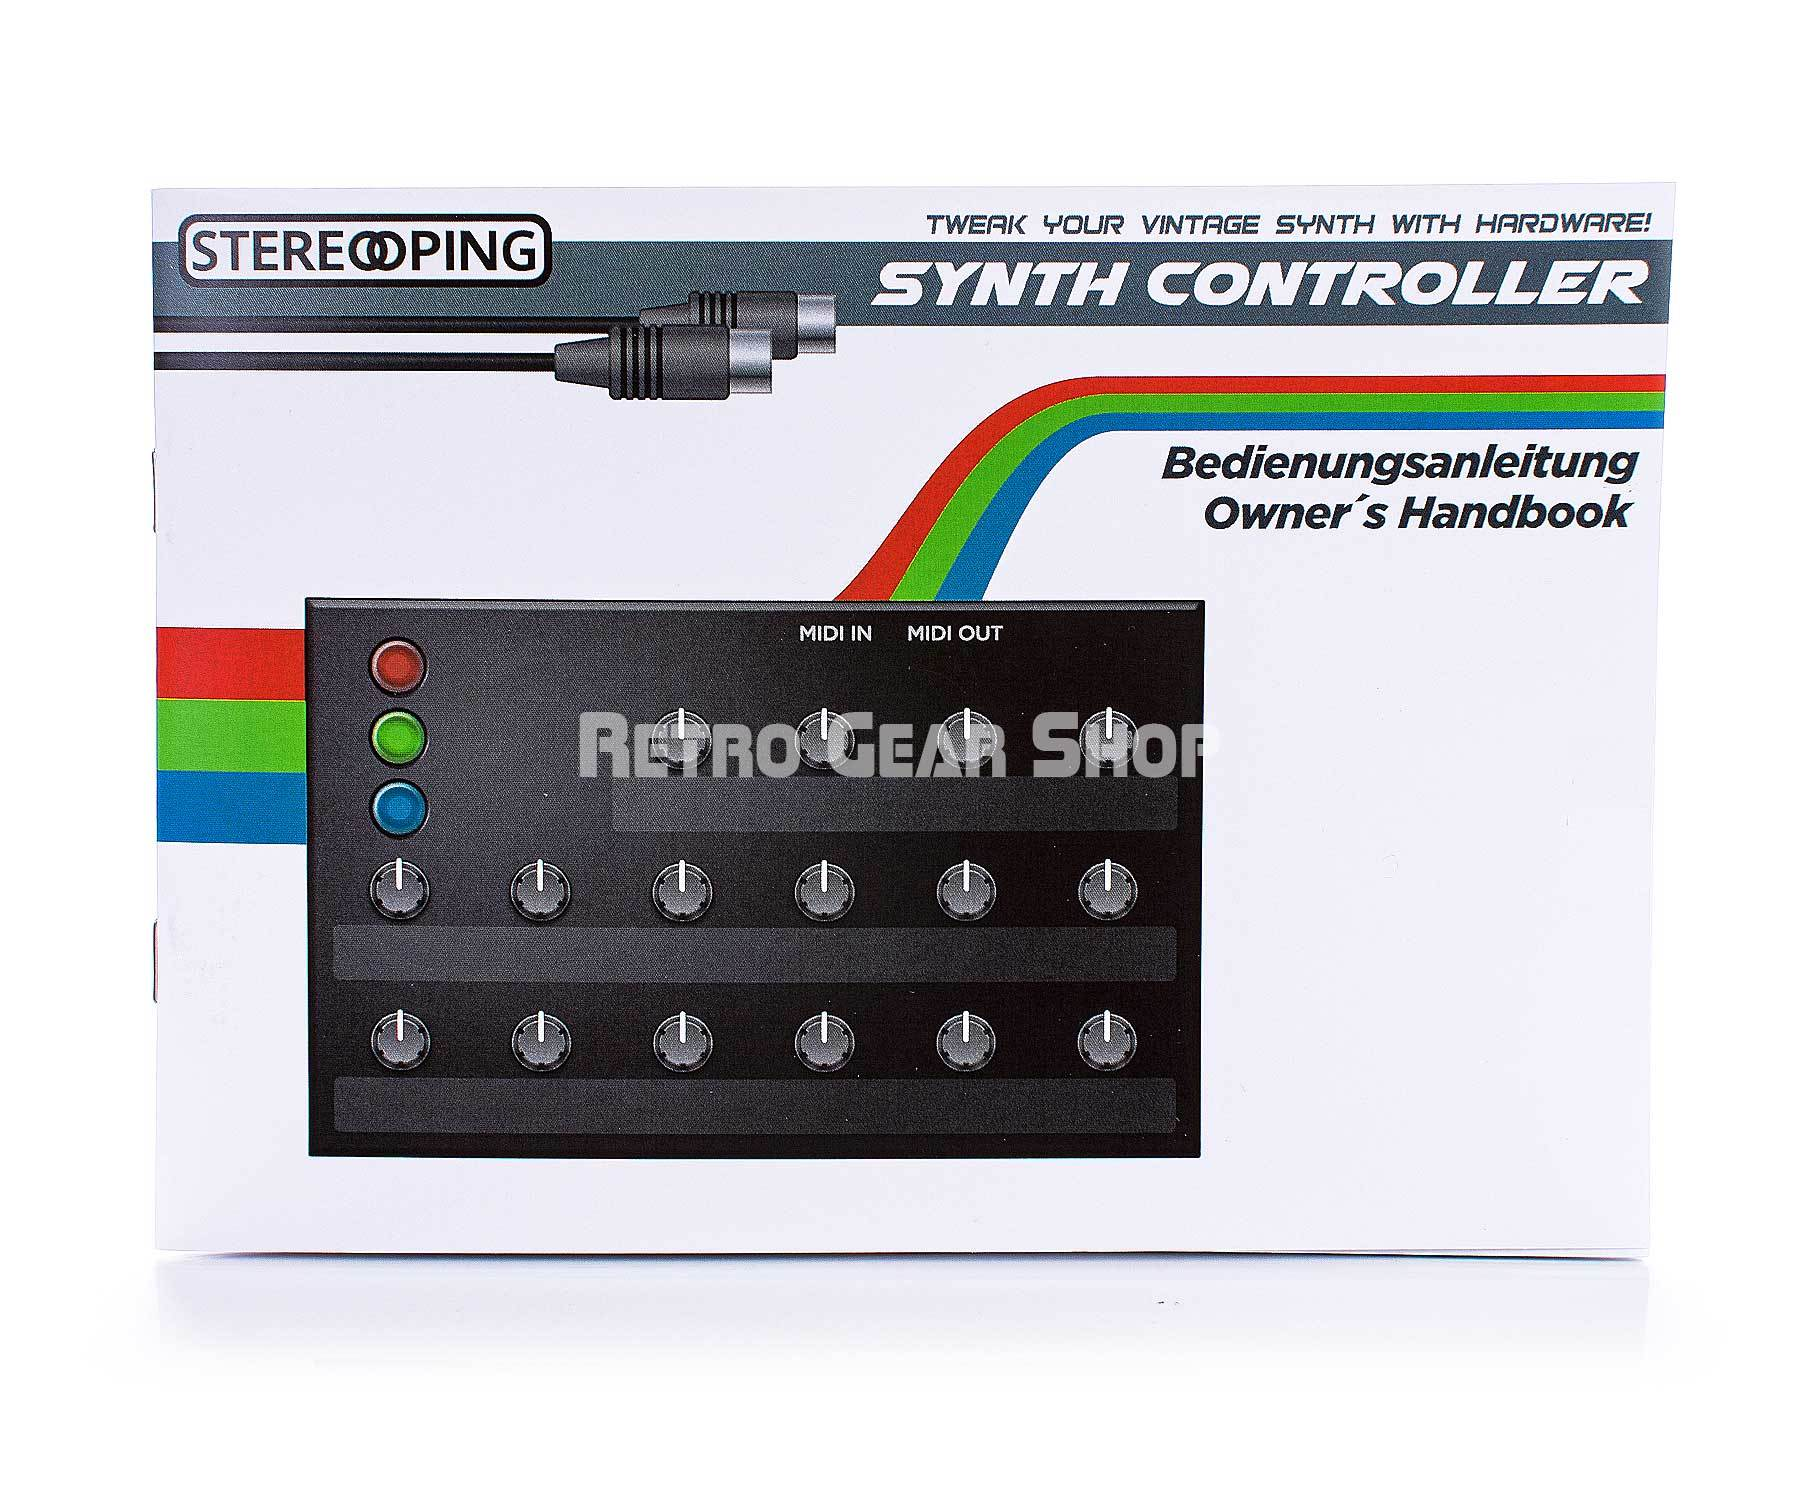 Stereoping CE-1 Midi Synthesizer Hardware Controller UniCC Edition VSTi Manual